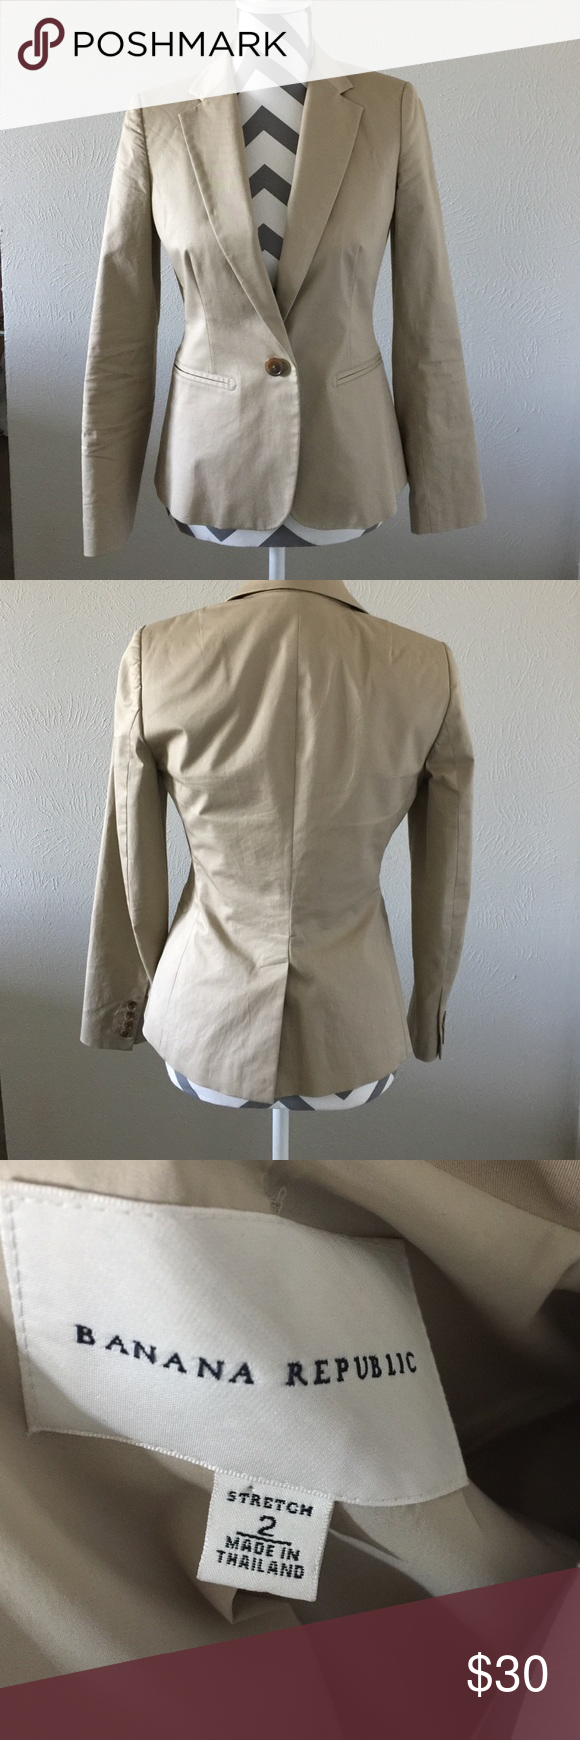 Banana Republic Blazer Banana Republic tan Blazer, it is lined and no visible signs of wear. 93% cotton 7% spandex, the lining is 95% polyester and 5% spandex Banana Republic Jackets & Coats Blazers